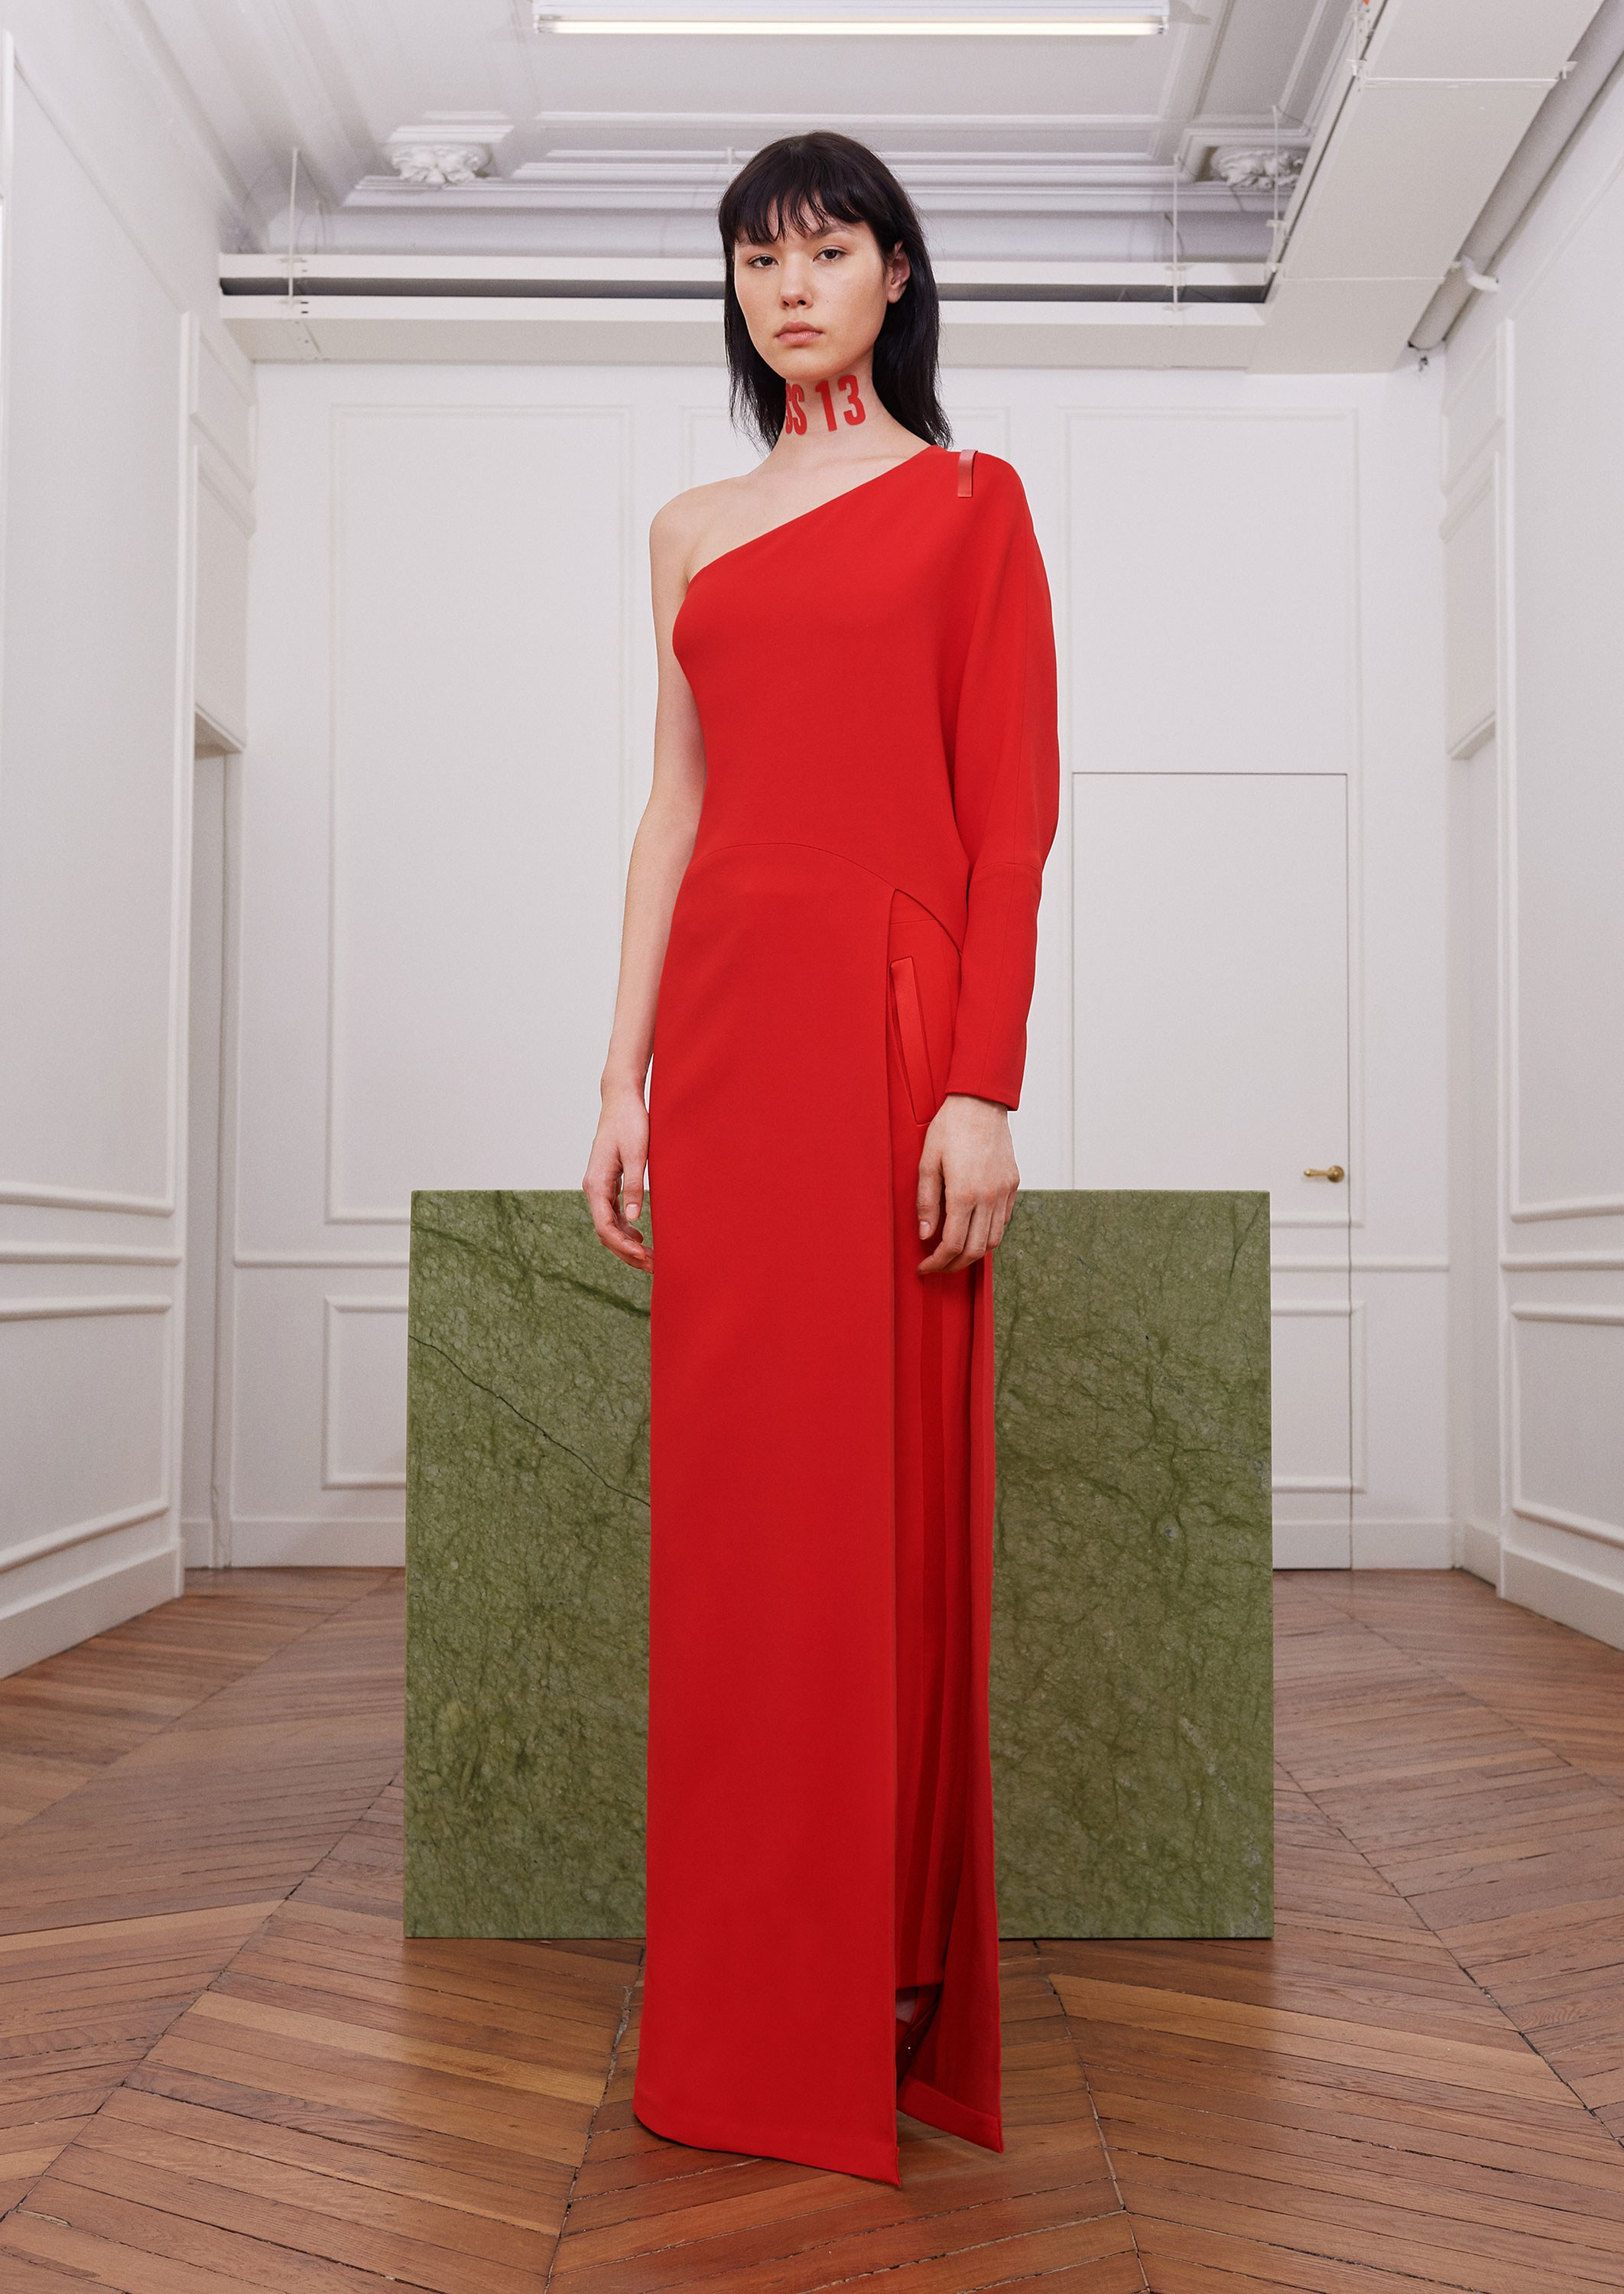 Red Trend-givenchy-rtw-fall-2017.jpg